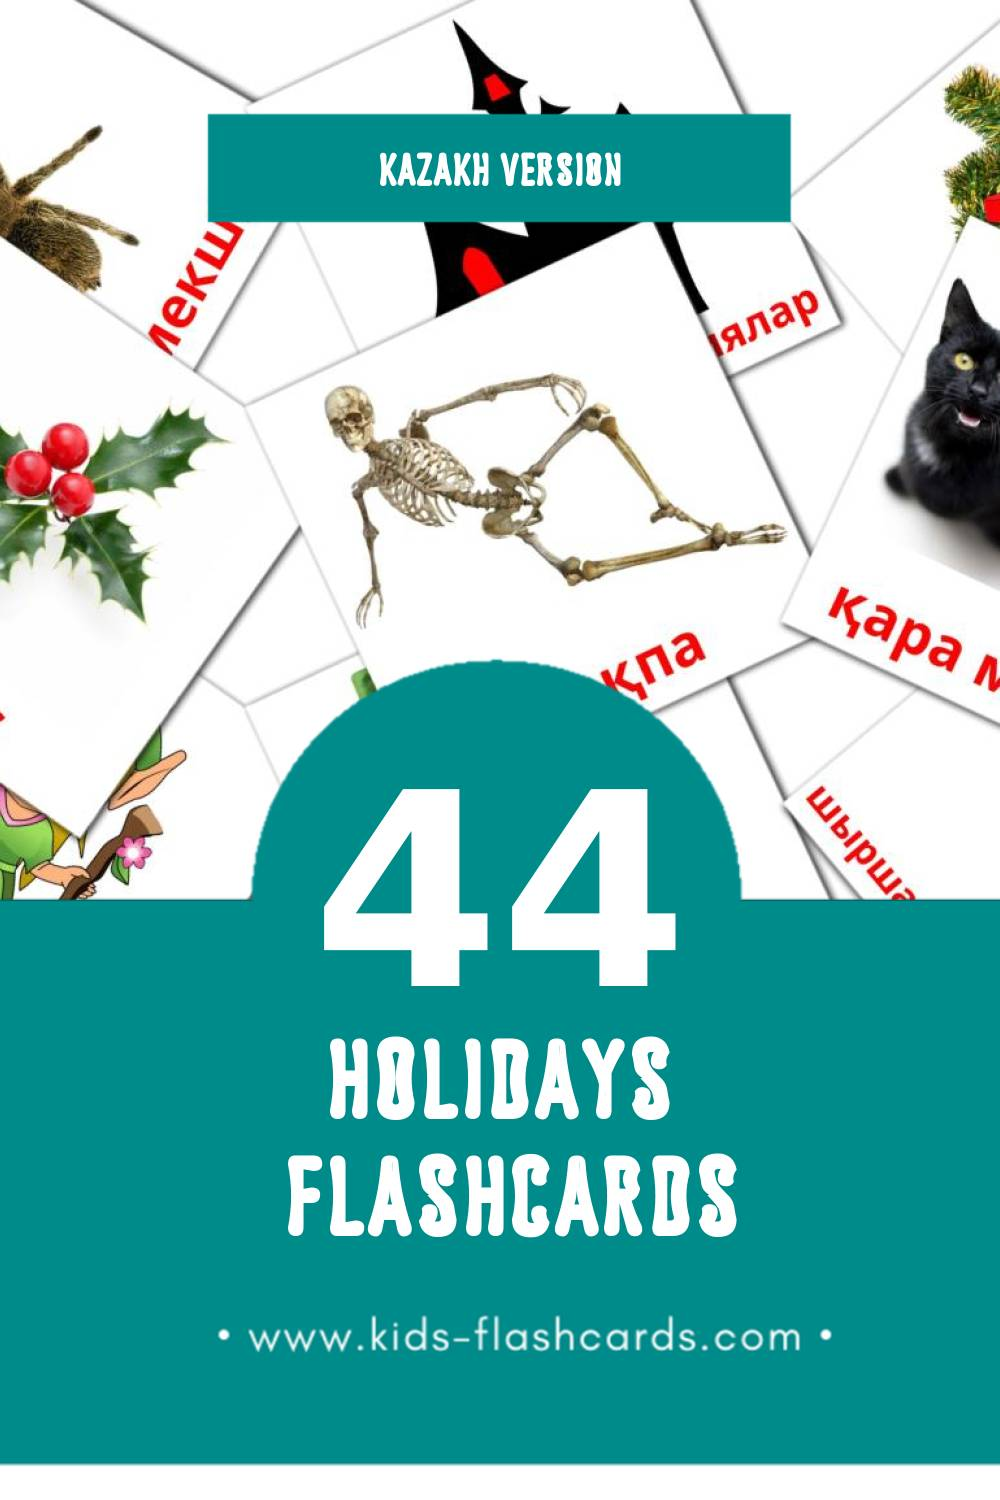 Visual Мерекелер Flashcards for Toddlers (28 cards in Kazakh)